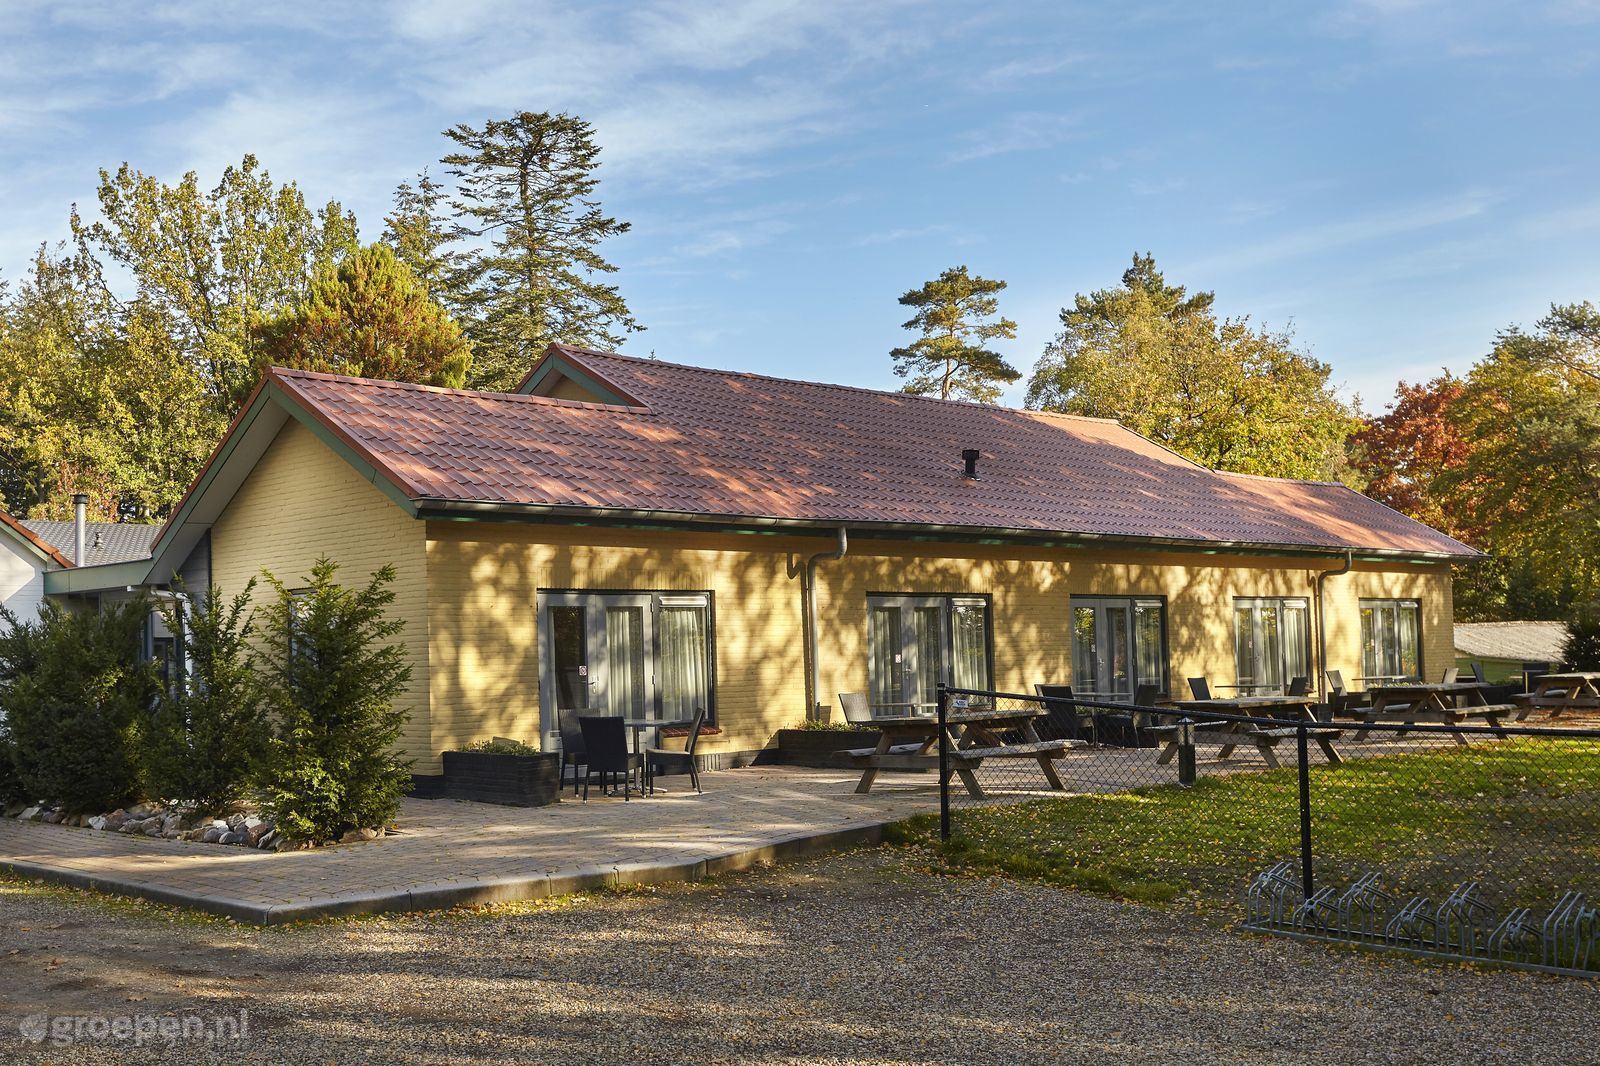 Group accommodation Beekbergen